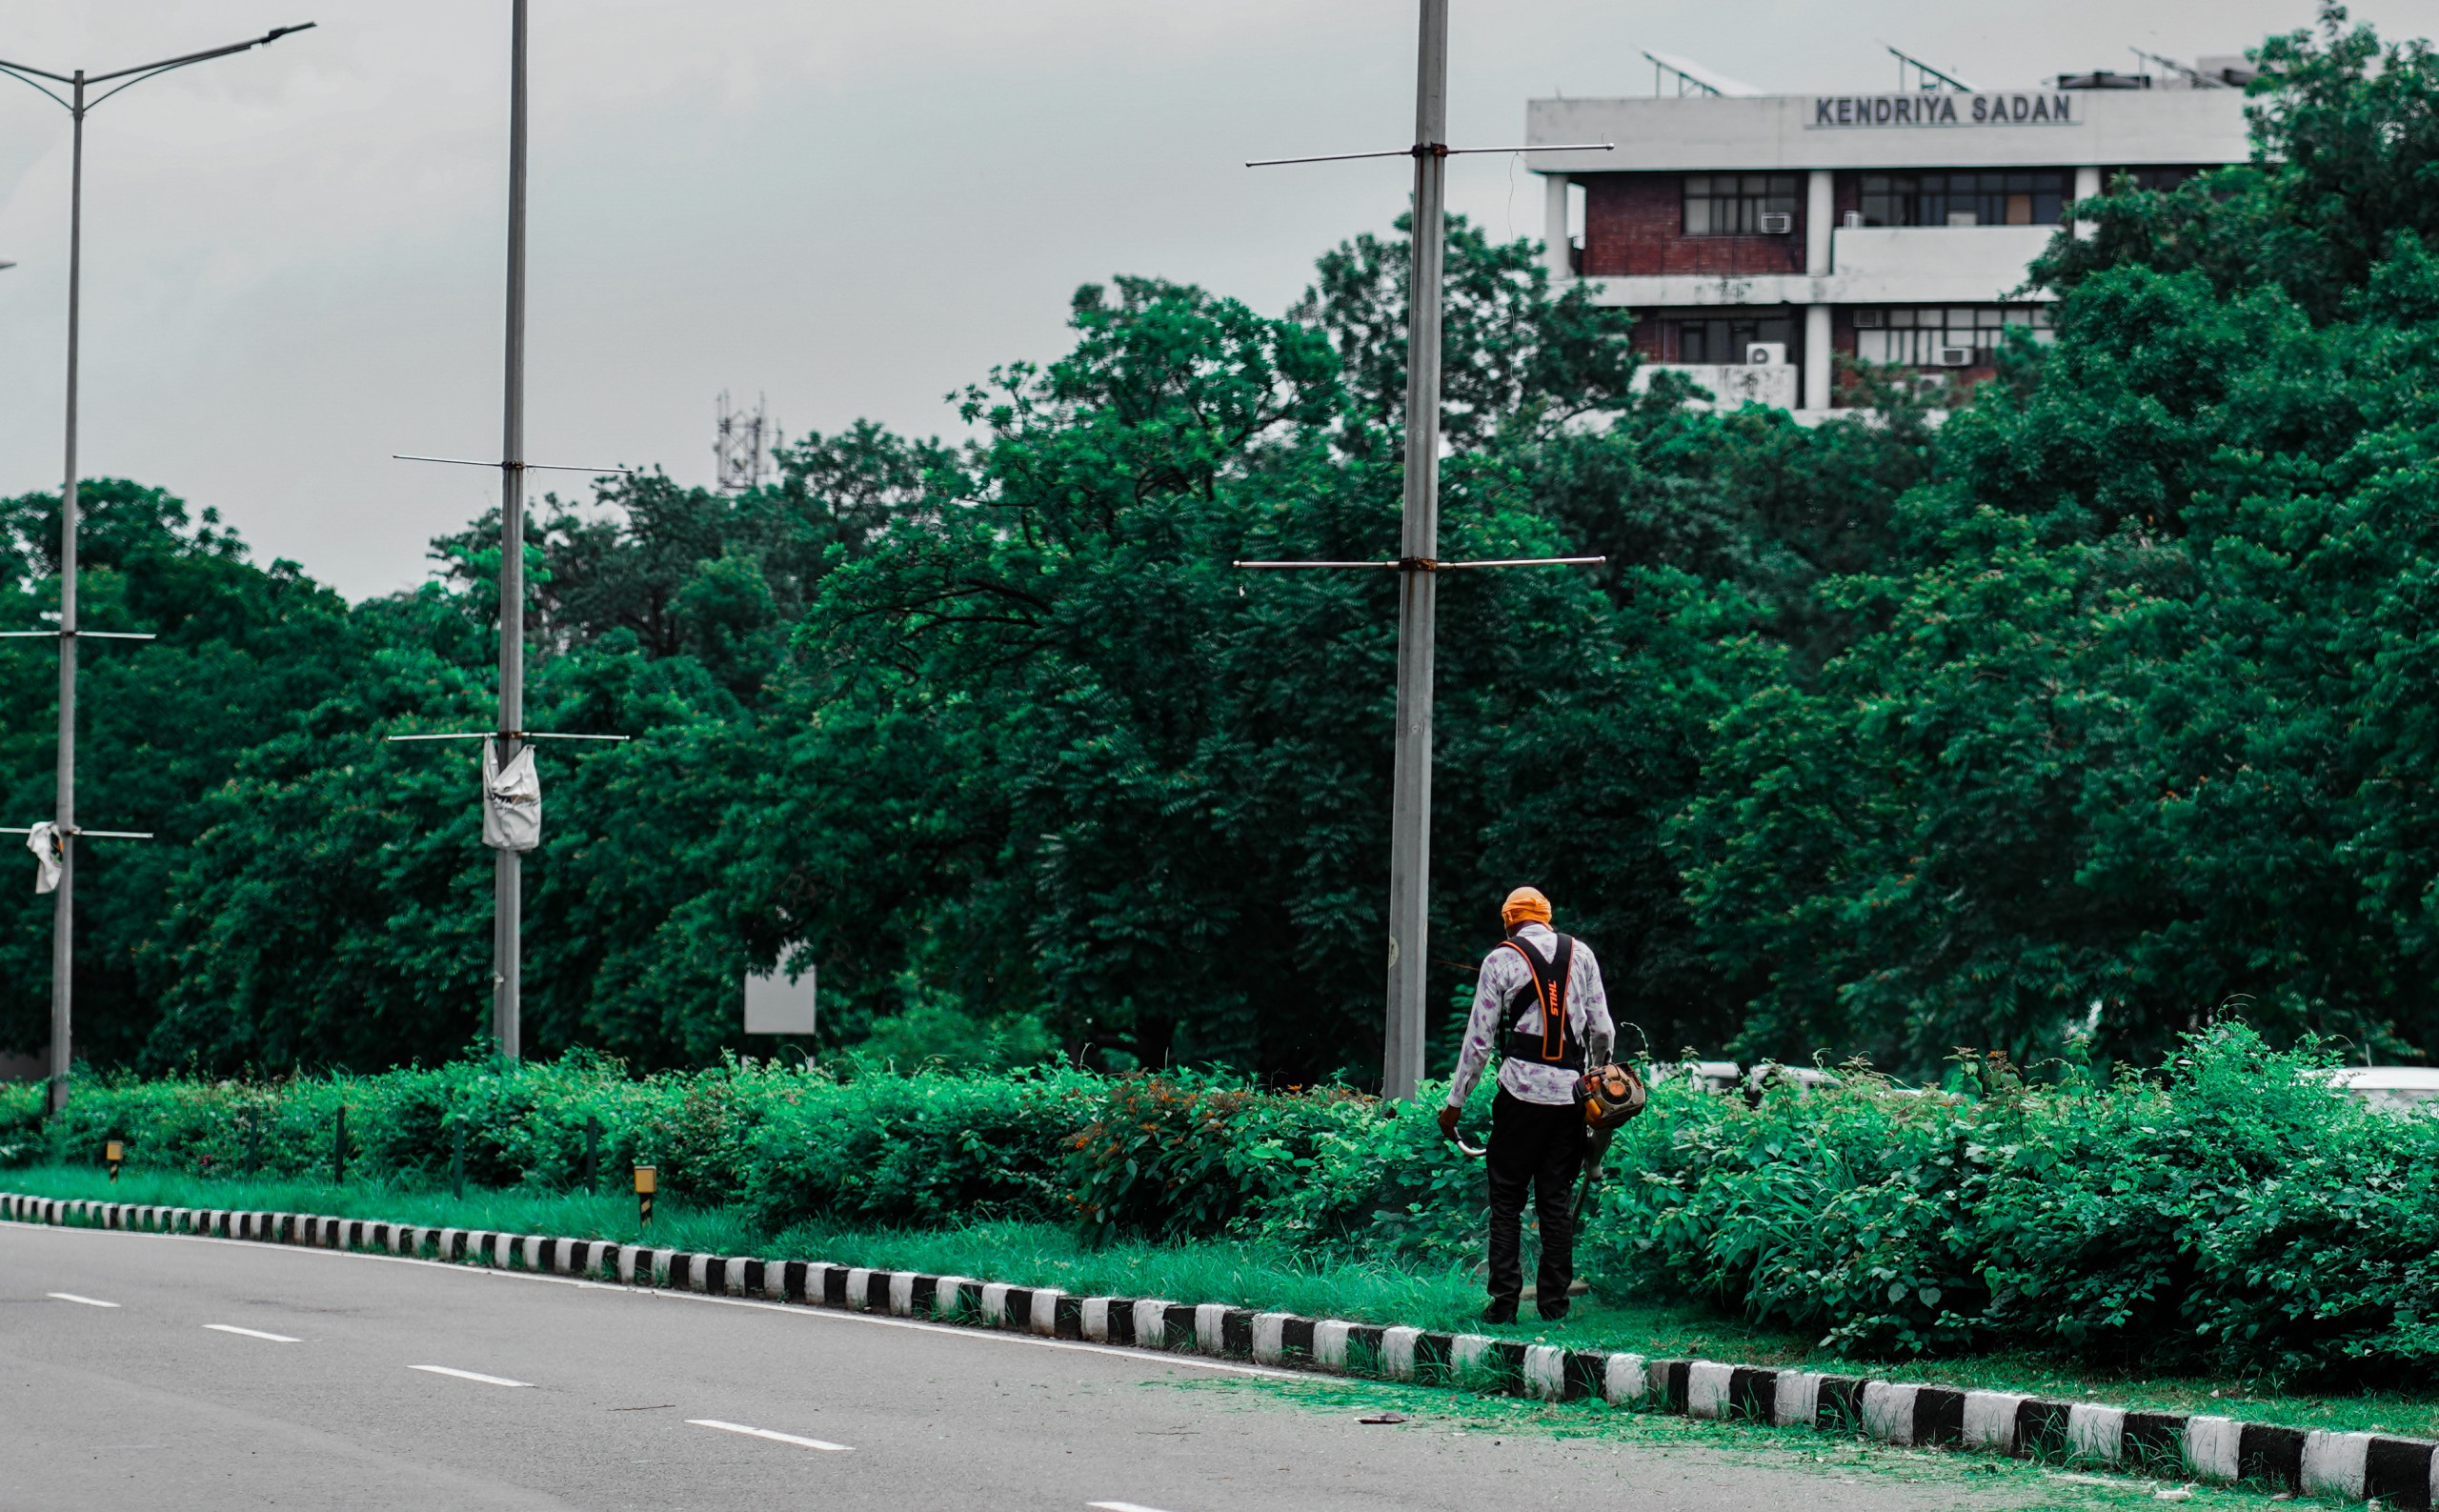 Road landscaper cutting grass along the highway using string lawn trimmer